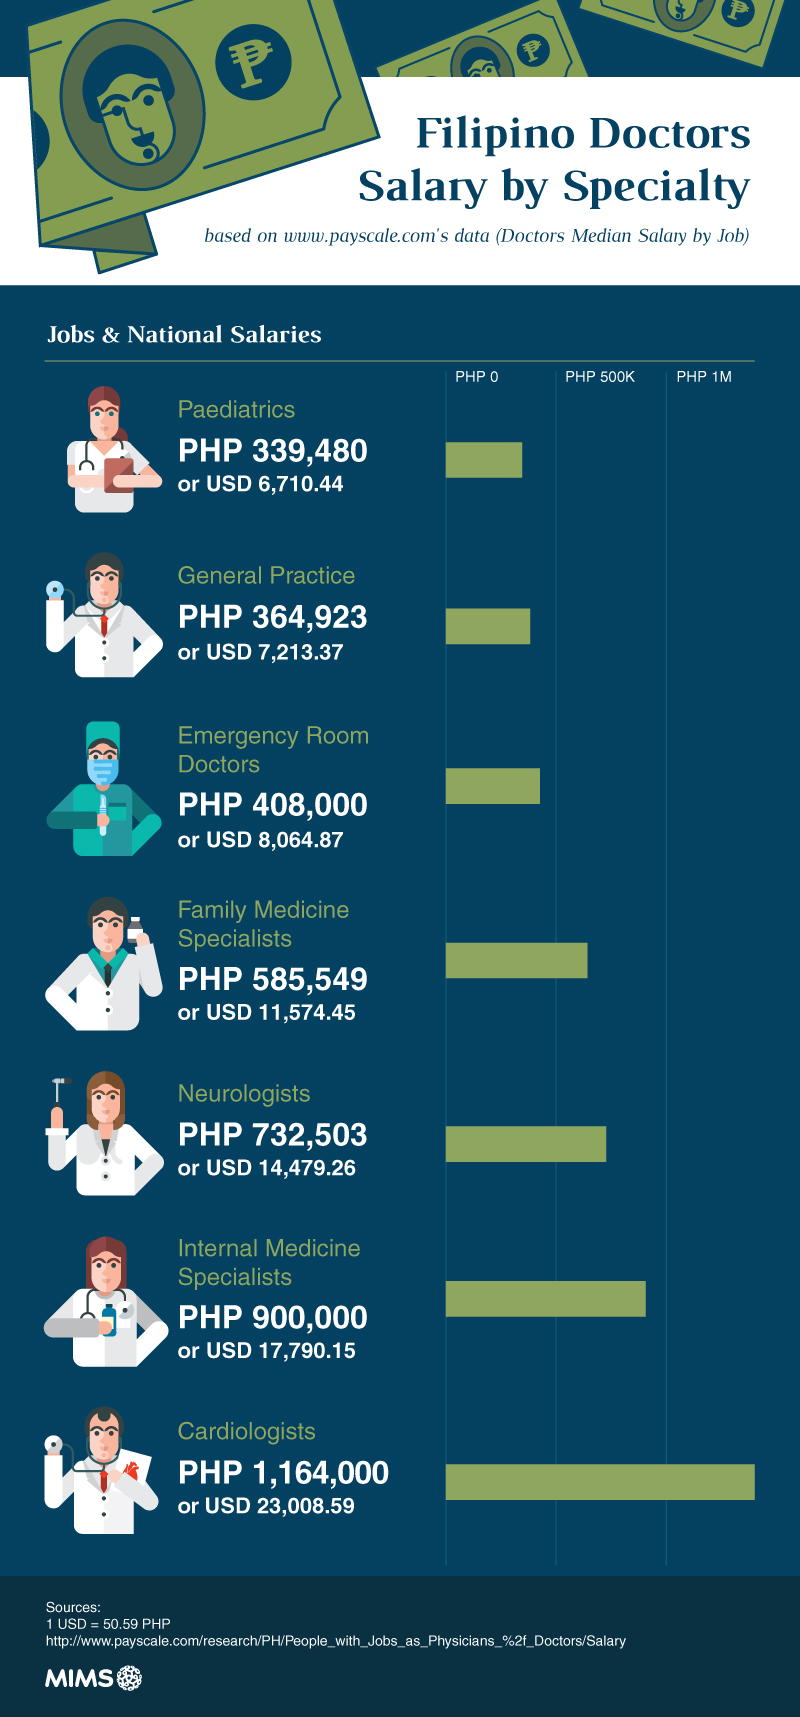 Comparing PH doctors salary with doctors in other countries